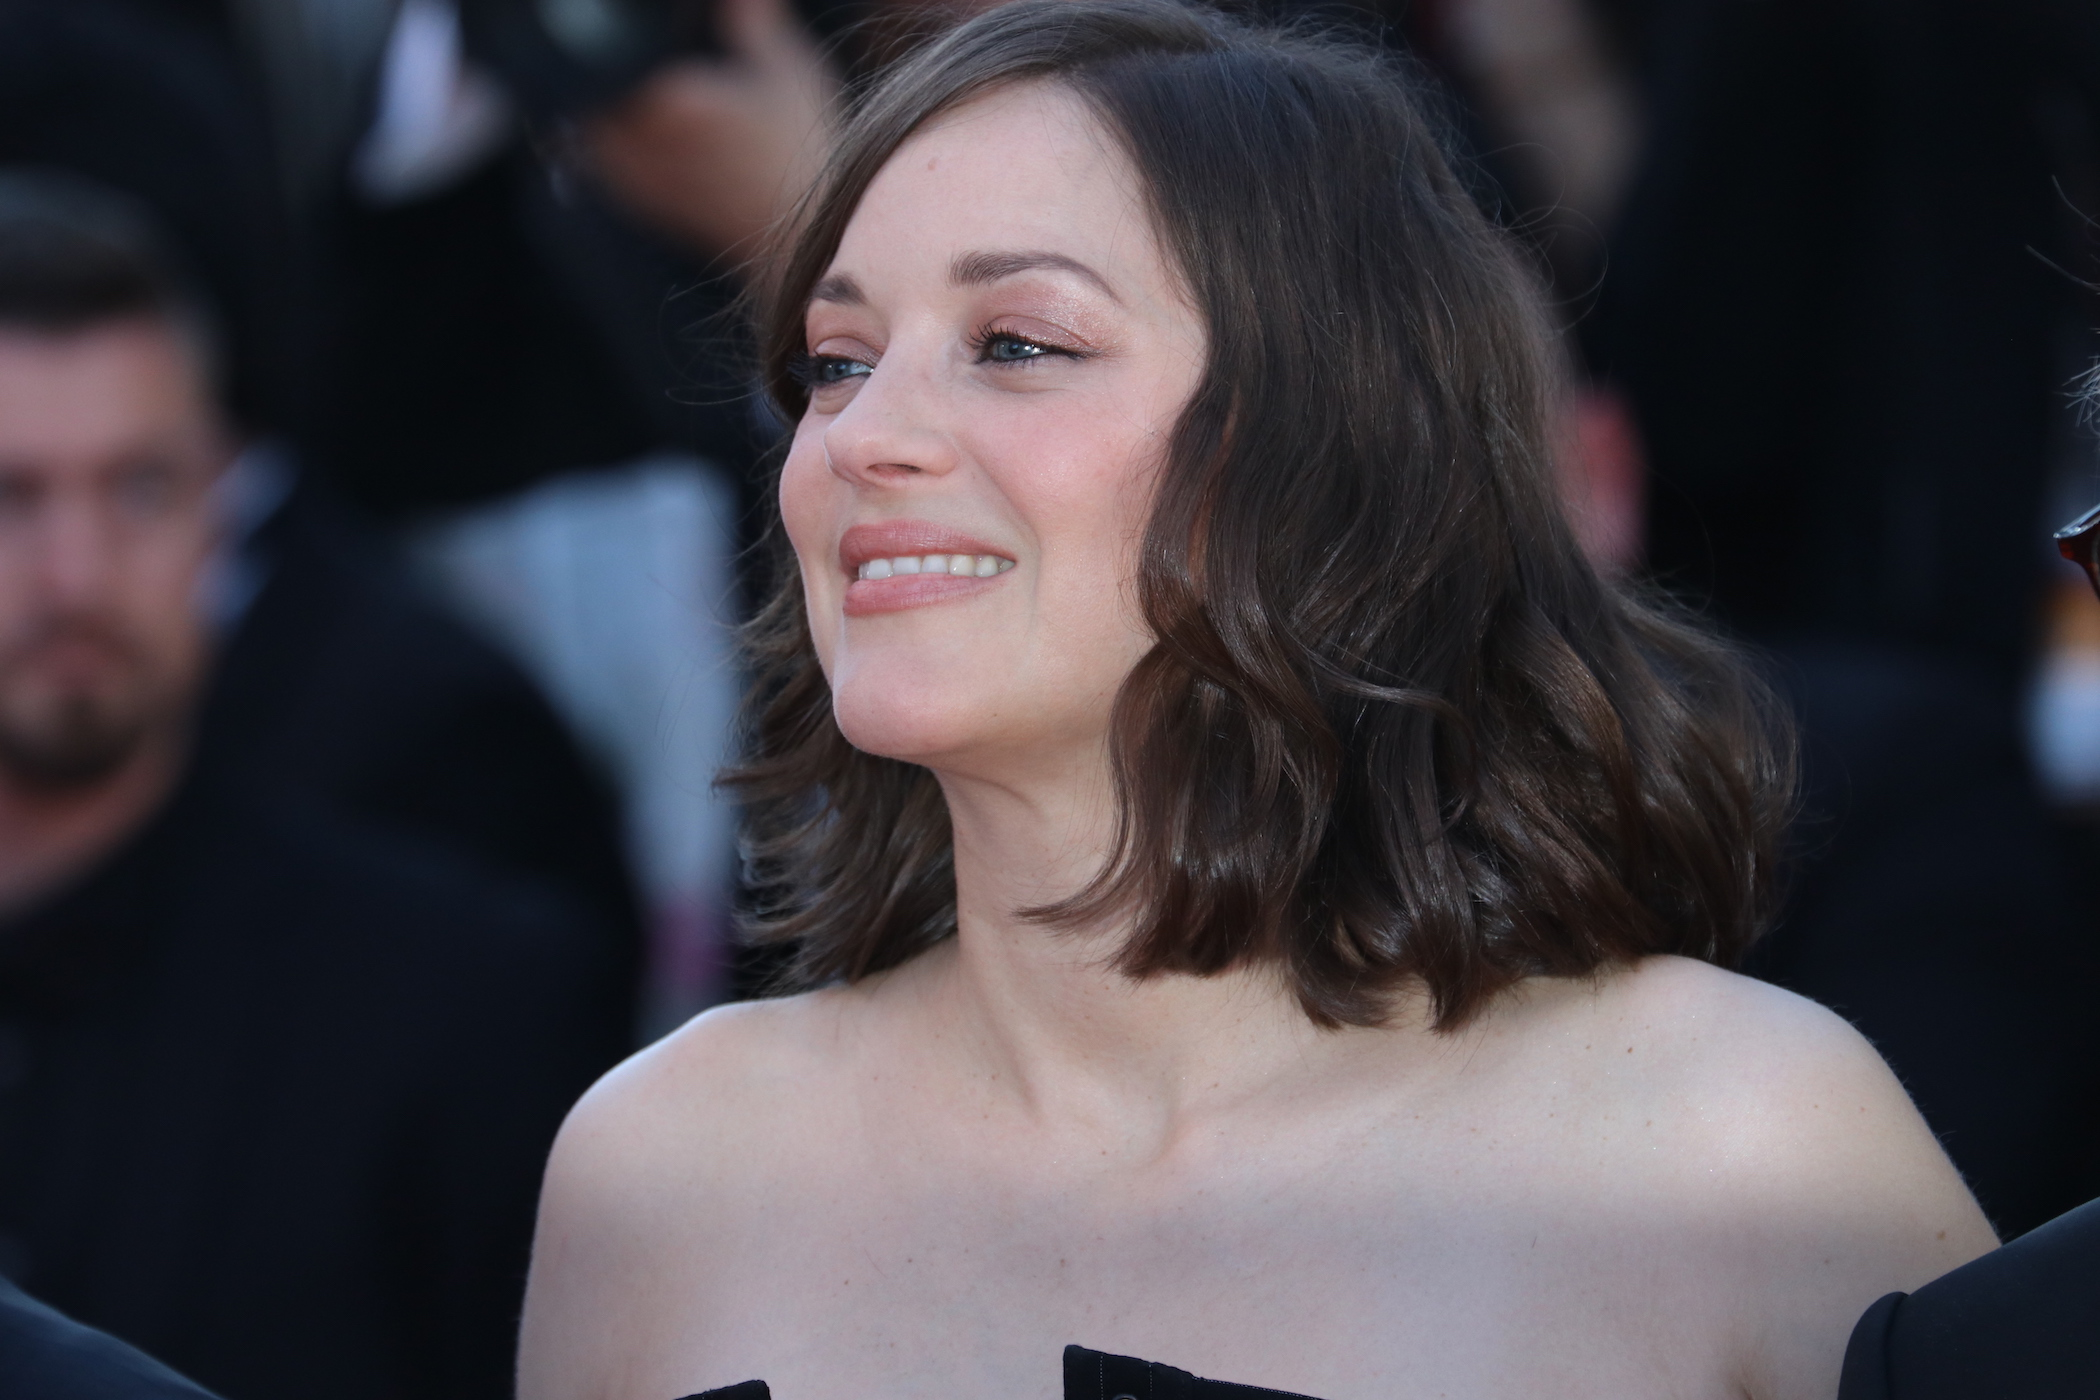 Cannes 2017: Marion Cotillard sul red carpet inaugurale